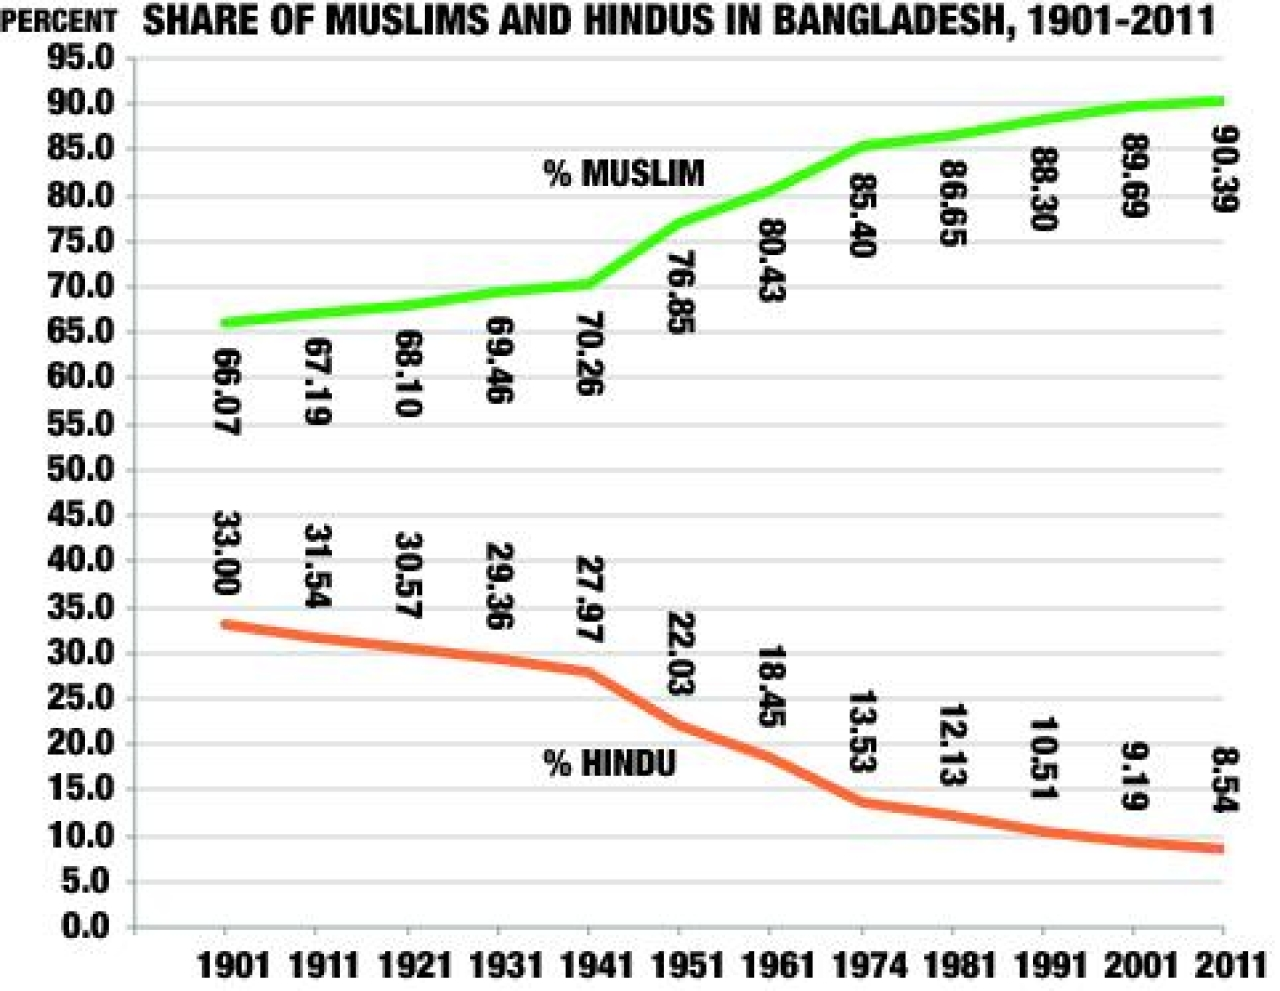 Share of Muslims and Hindus in Bangladesh.